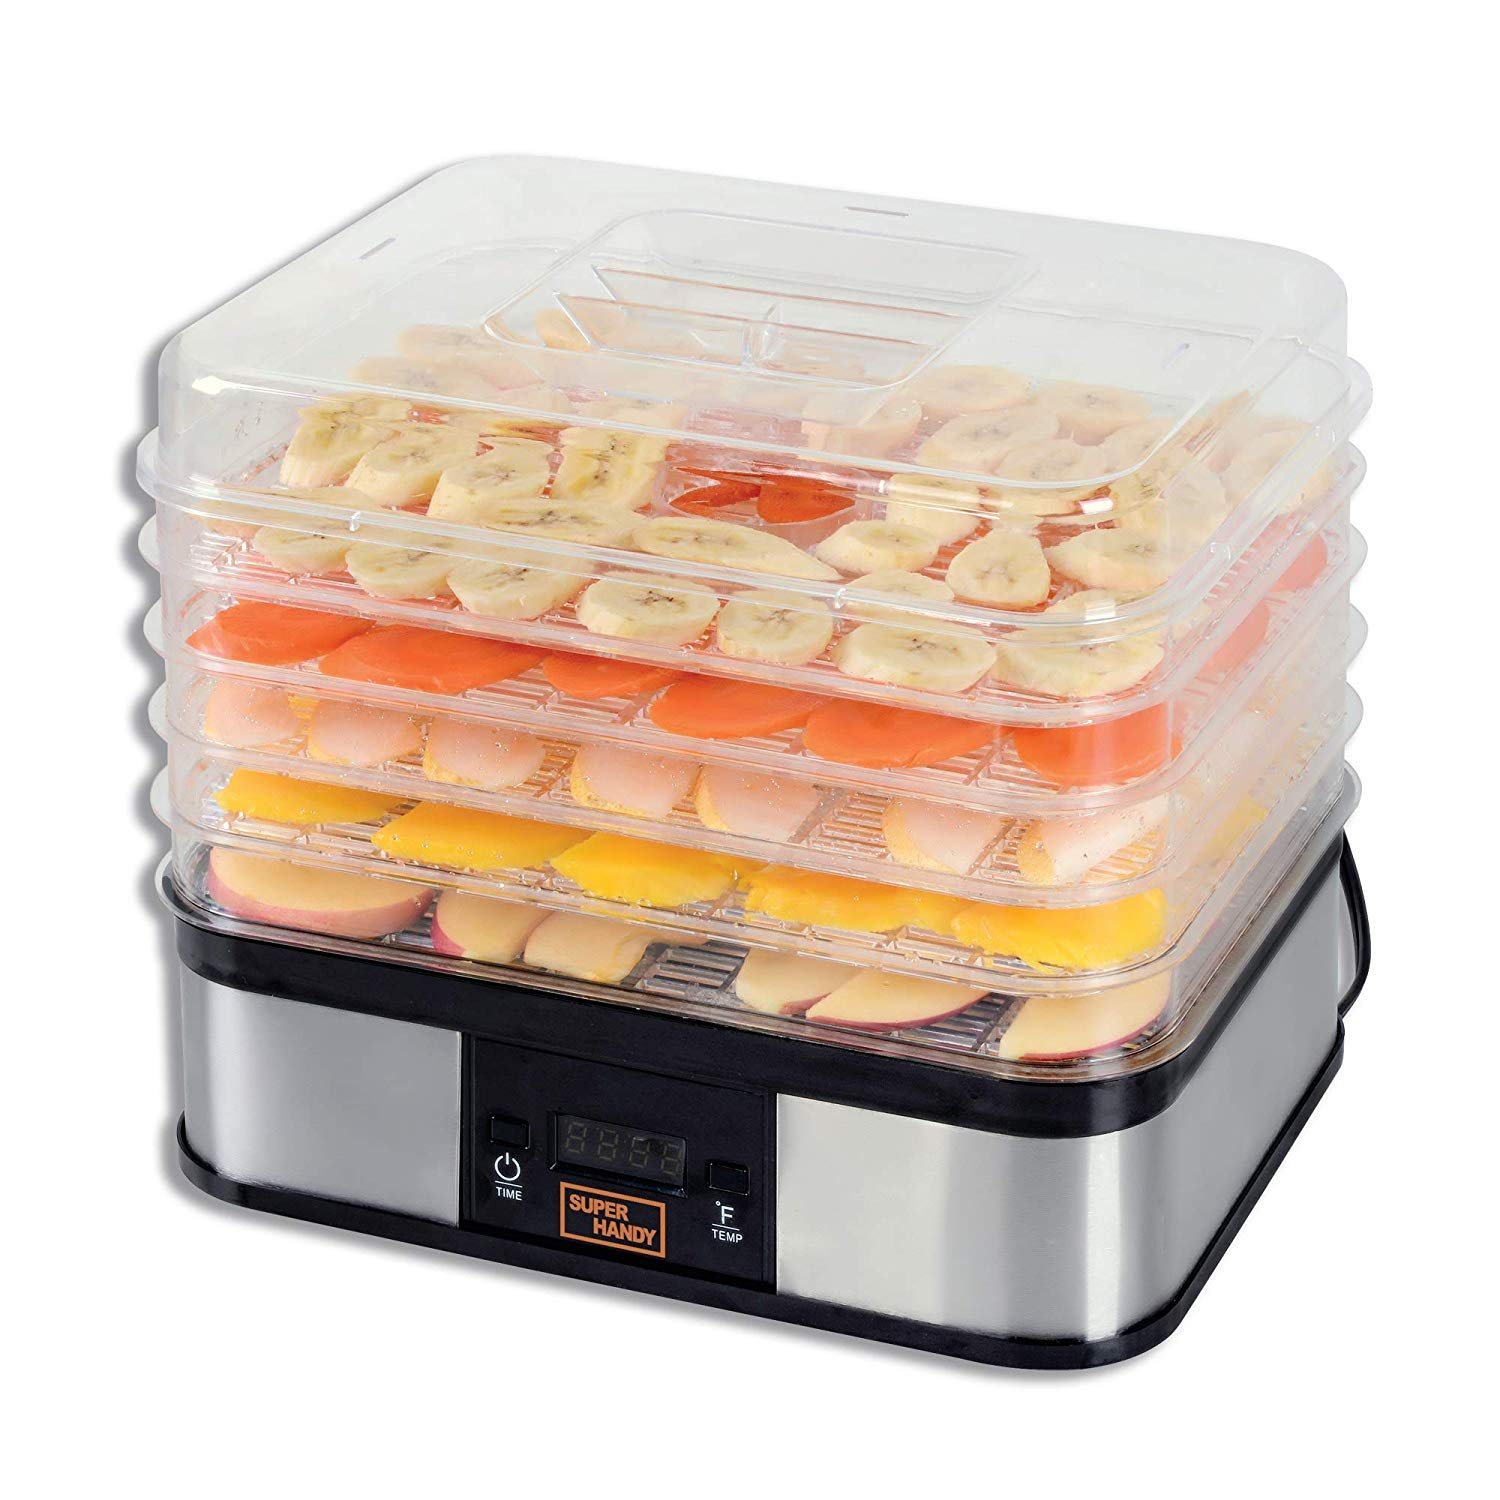 SuperHandy Food Dehydrator Electric Preserver Machine 5 Tray Layer BPA Free Professional Digital Timer 1-48h Temperature Range 104F (40C) - 158F (70C) for Jerky/Meat/Fruit/Vegetable by SuperHandy